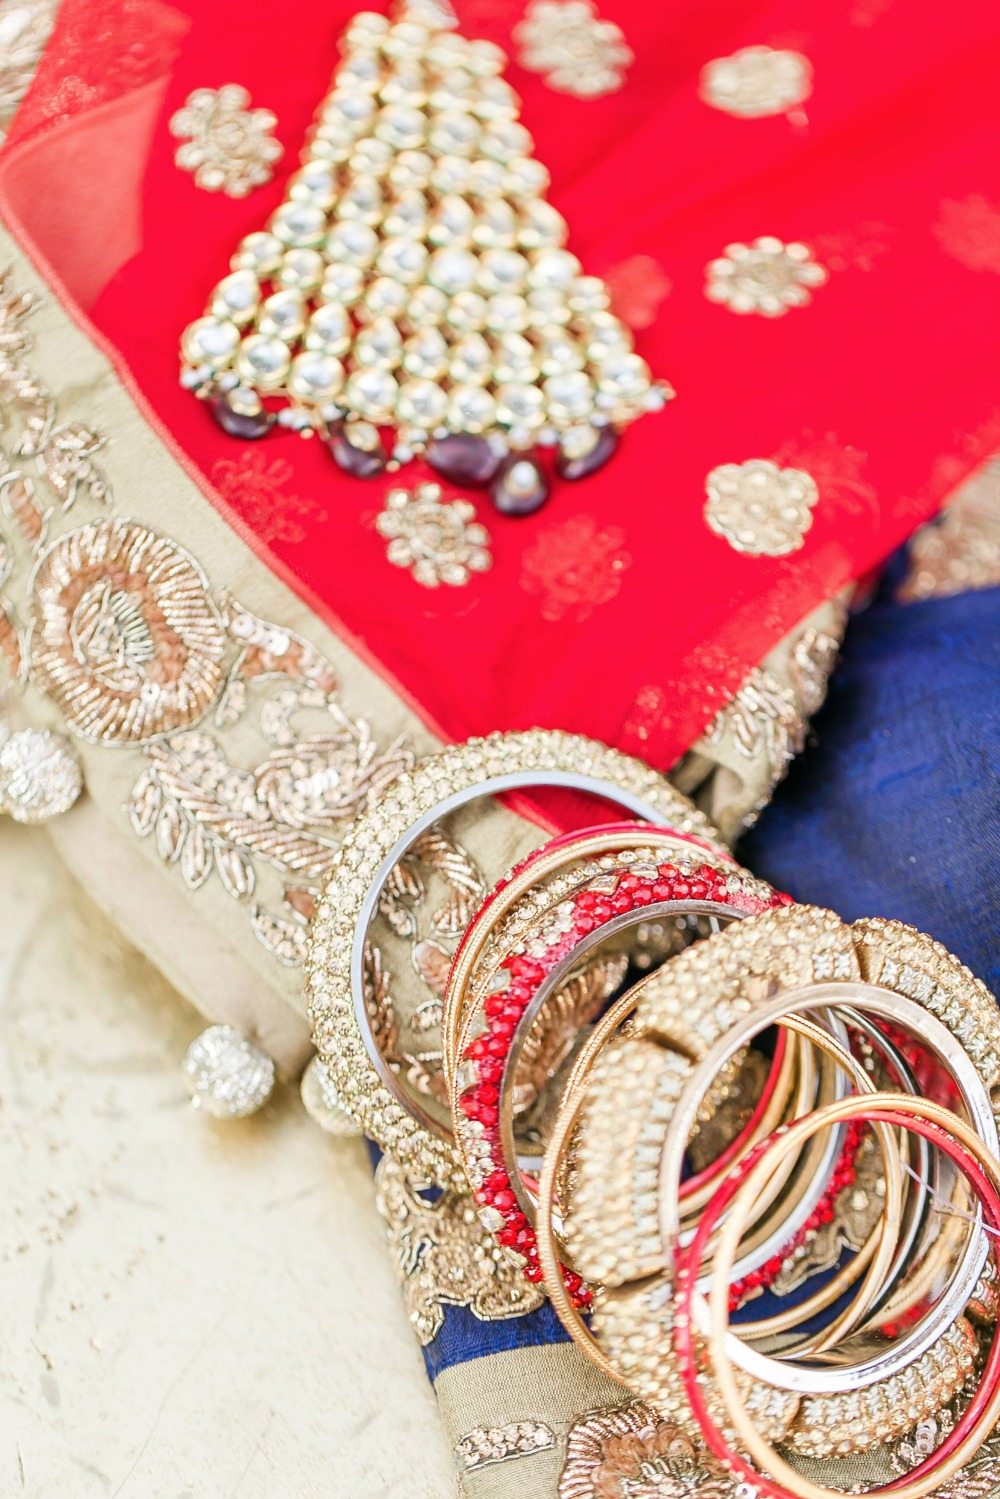 Bridal jewelry and details